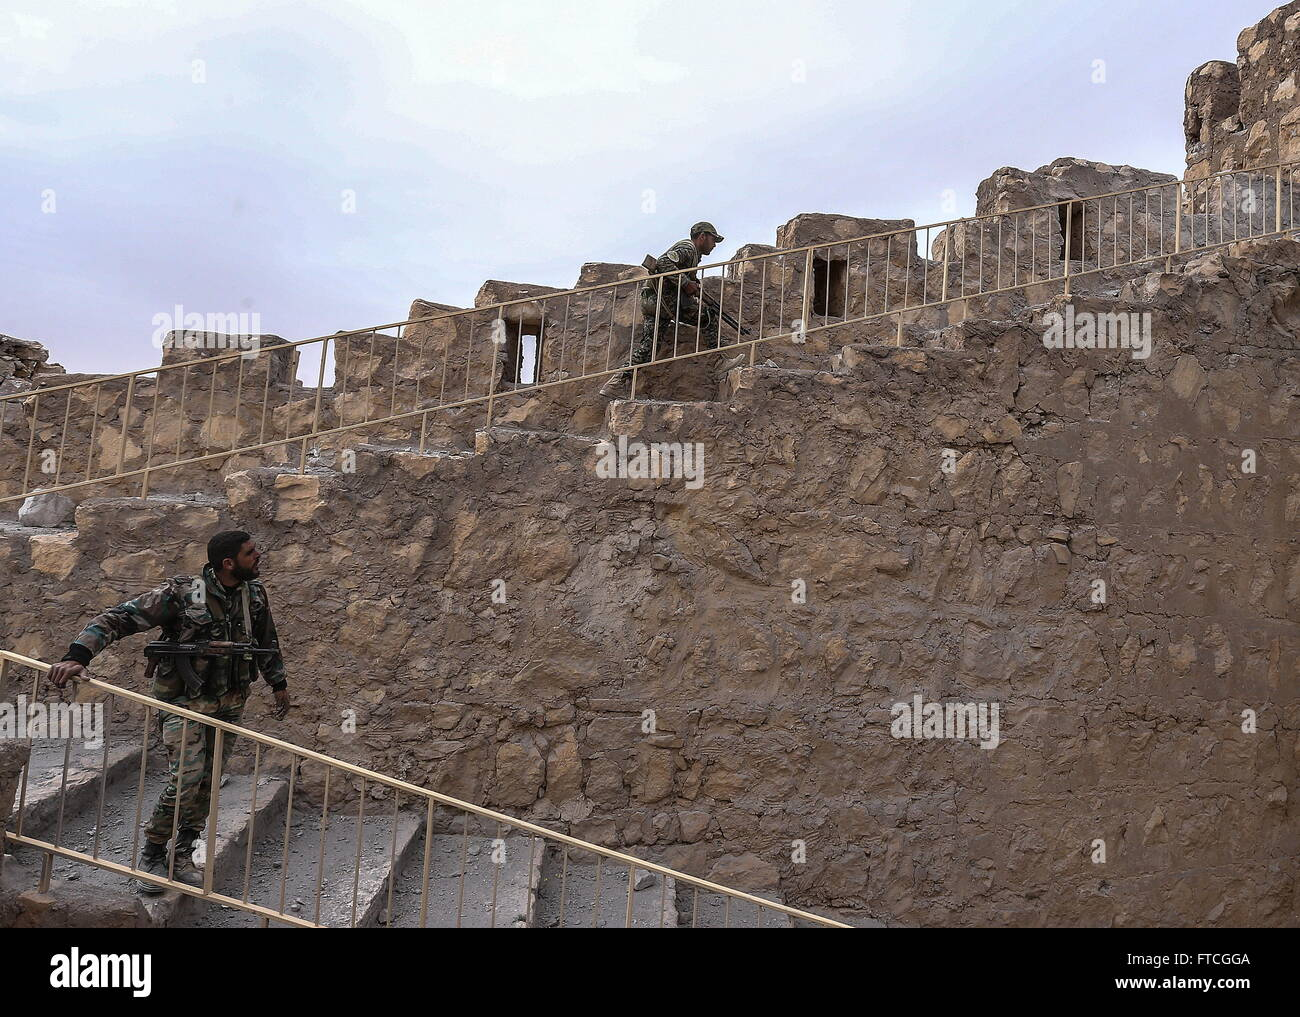 Palmyria, Syria. 26th Mar, 2016. Syrian government army soldiers in Fakhr al-Din al-Maani Citadel in Palmyra, a Stock Photo